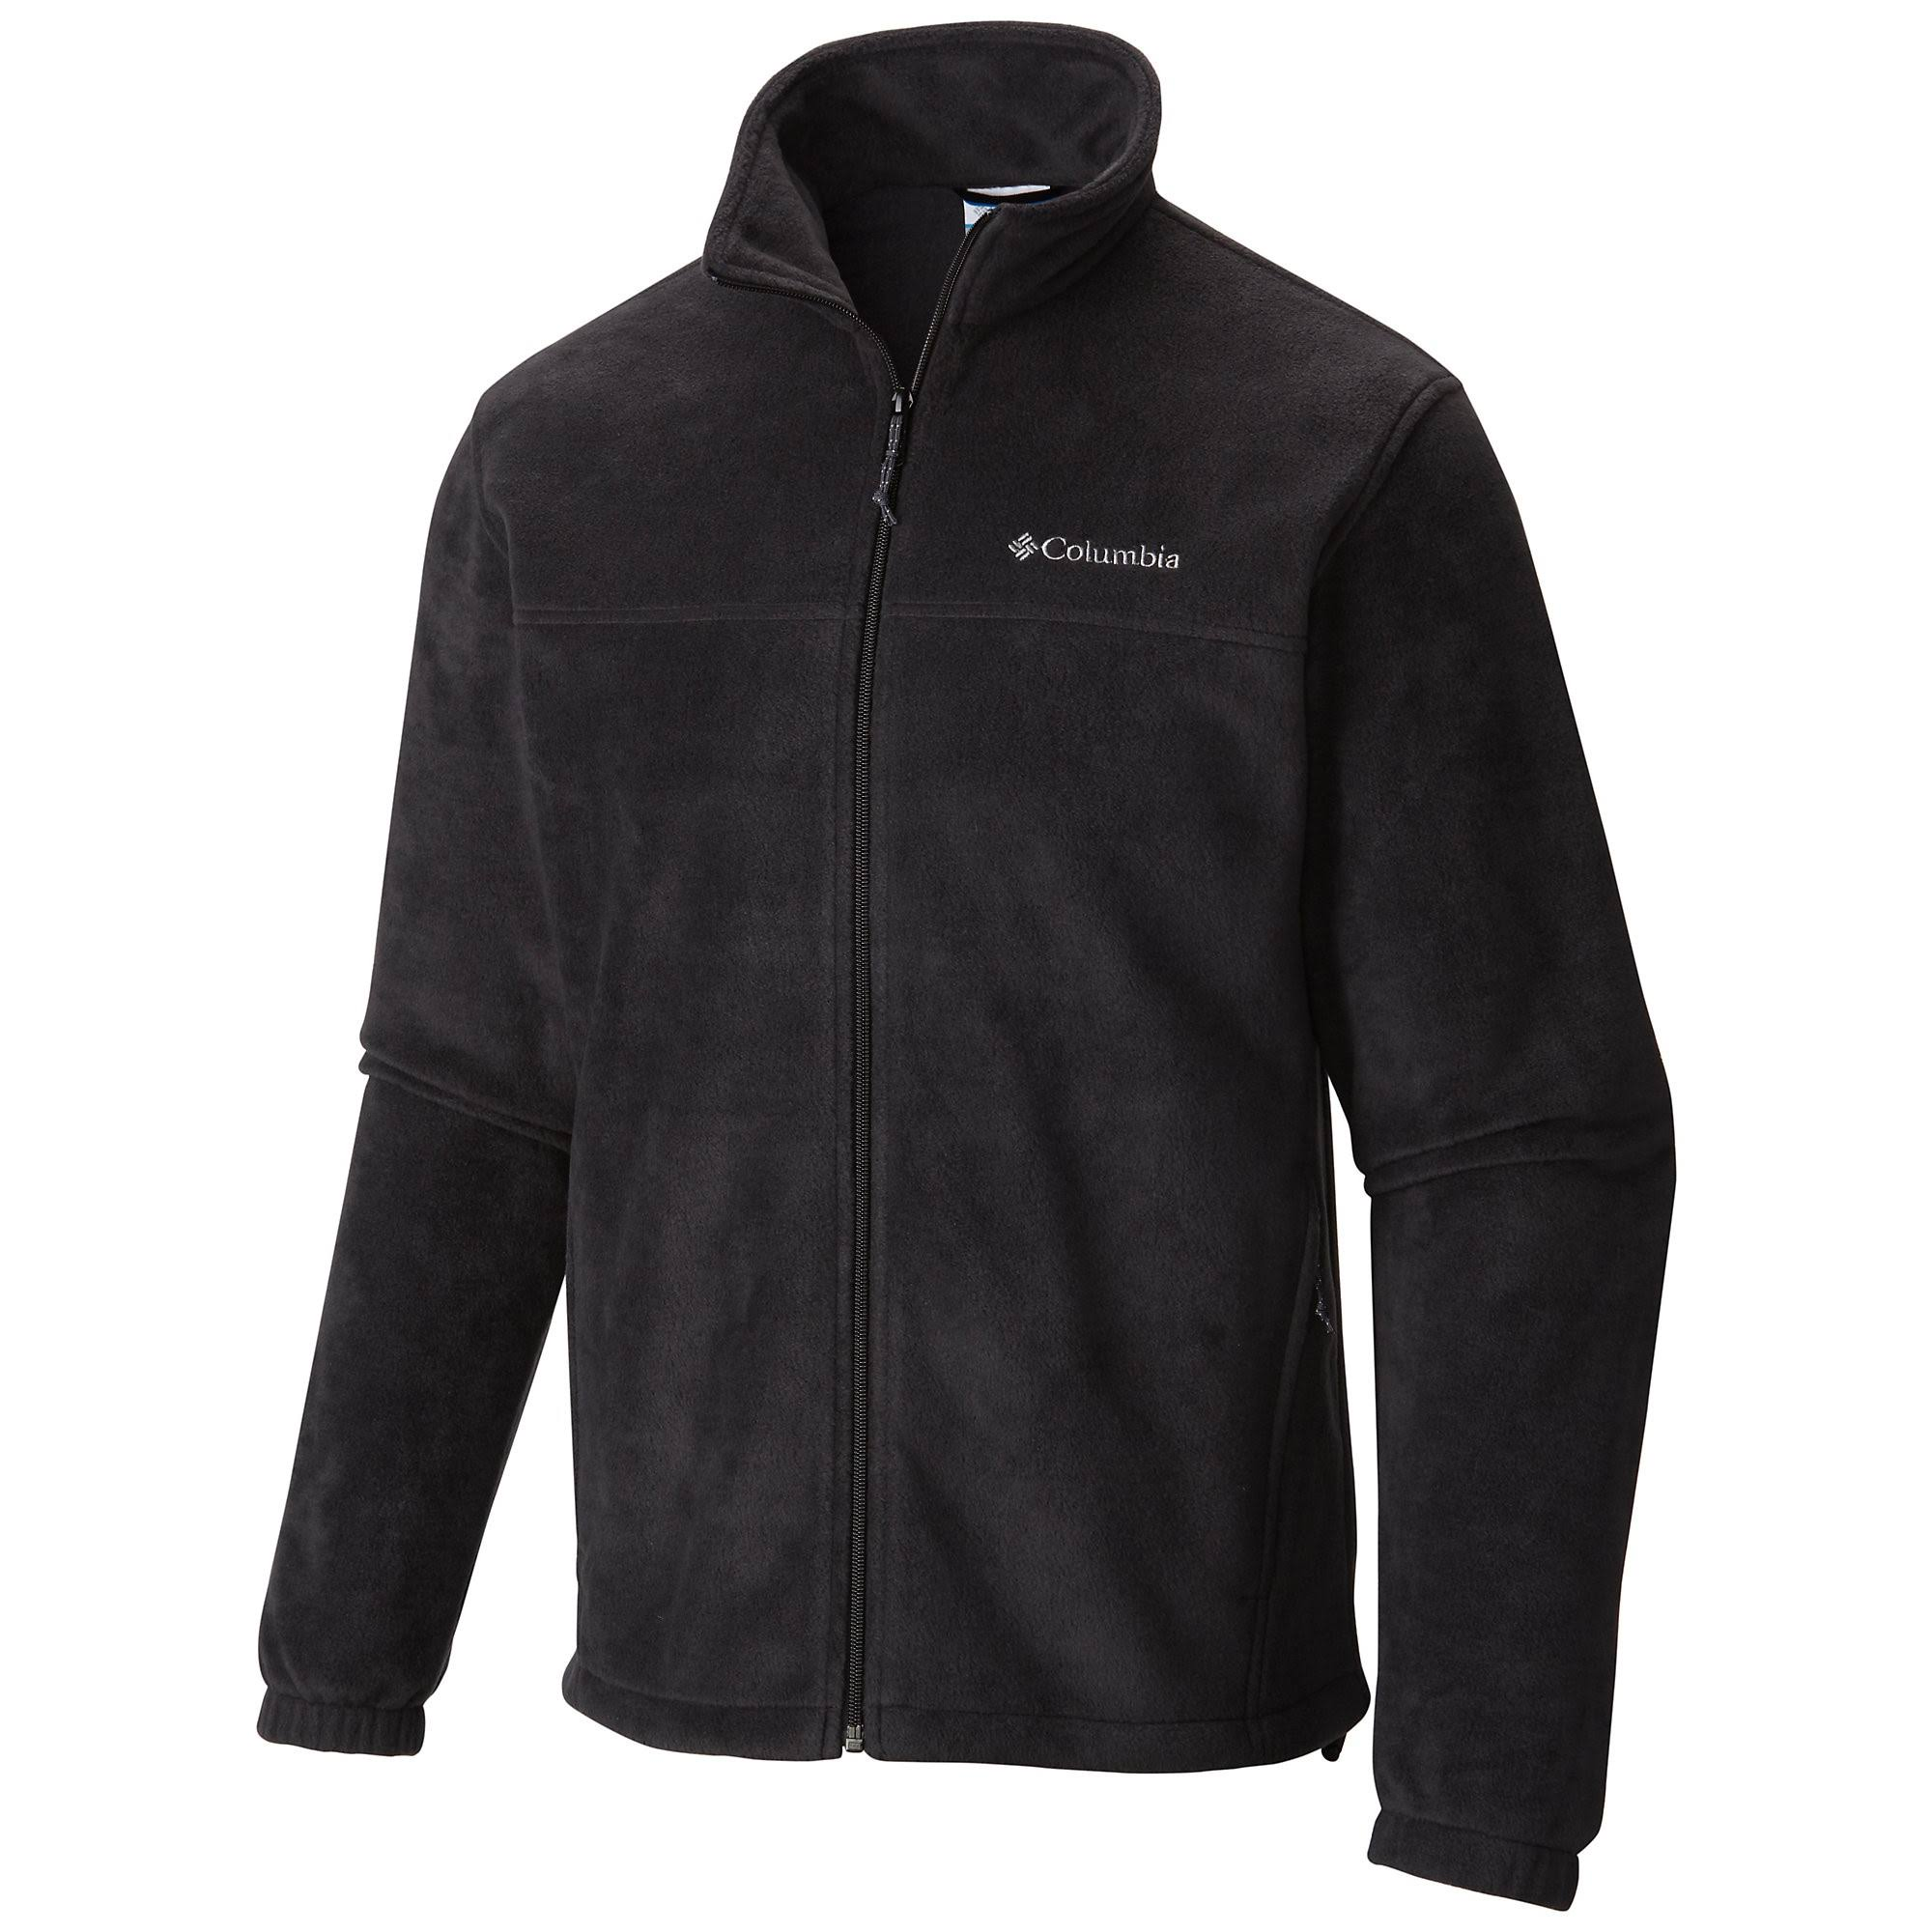 Columbia Men's Steens Mountain Full Zip Fleece 2.0 Black